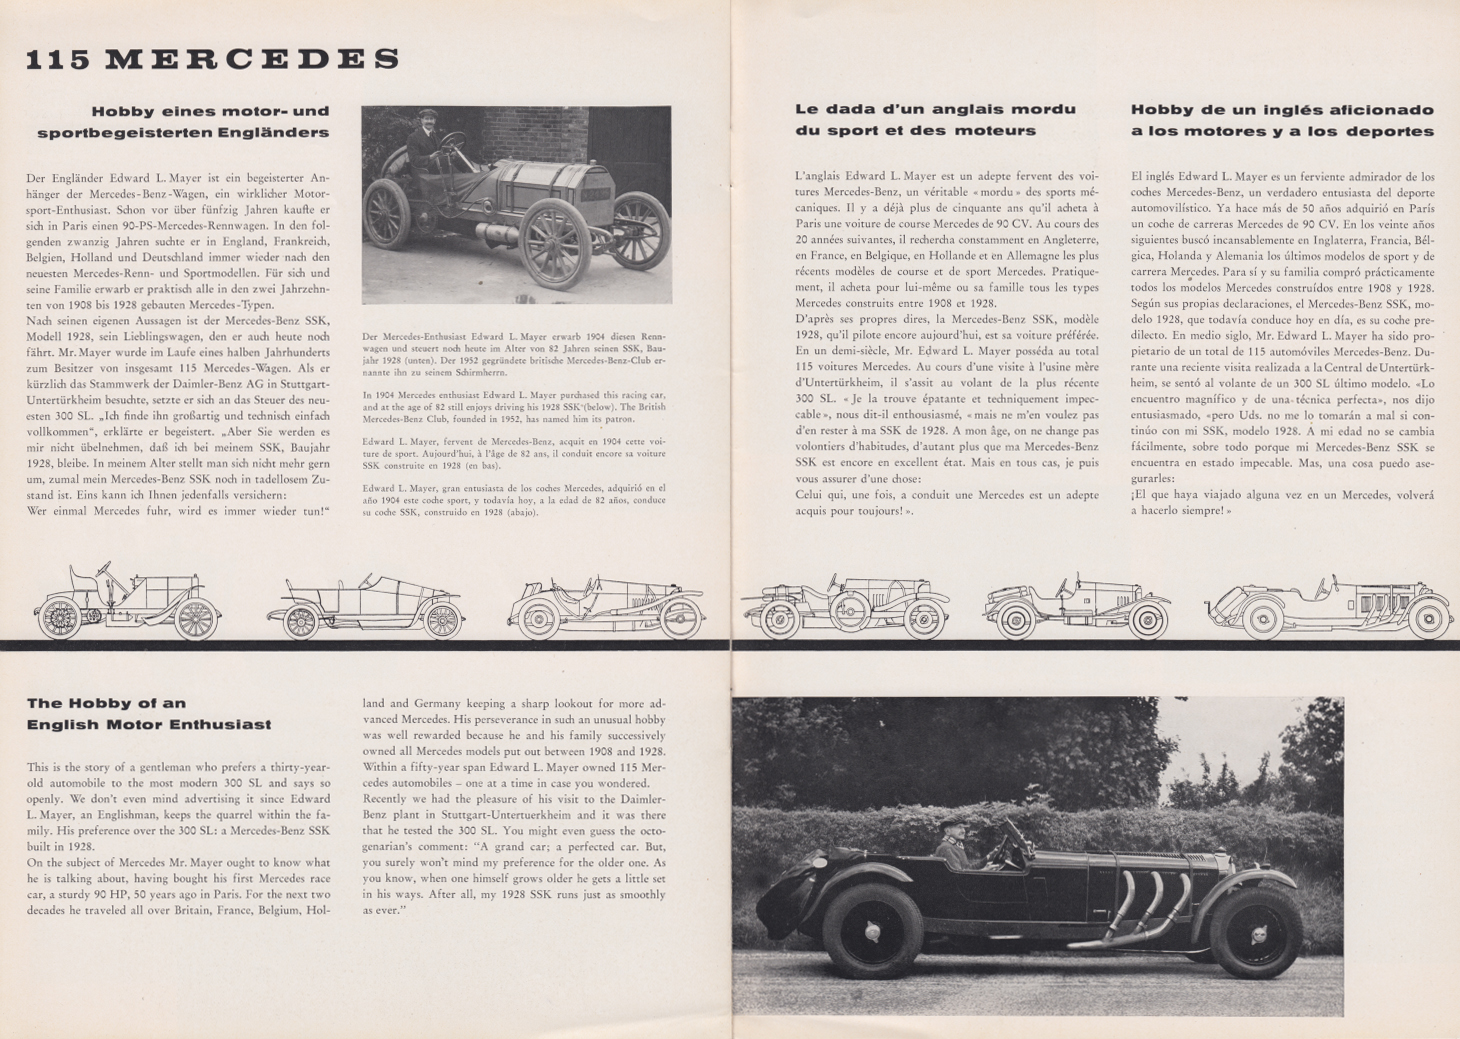 (REVISTA): Periódico In aller welt n.º 29 - Mercedes-Benz no mundo - 1959 - multilingue 010